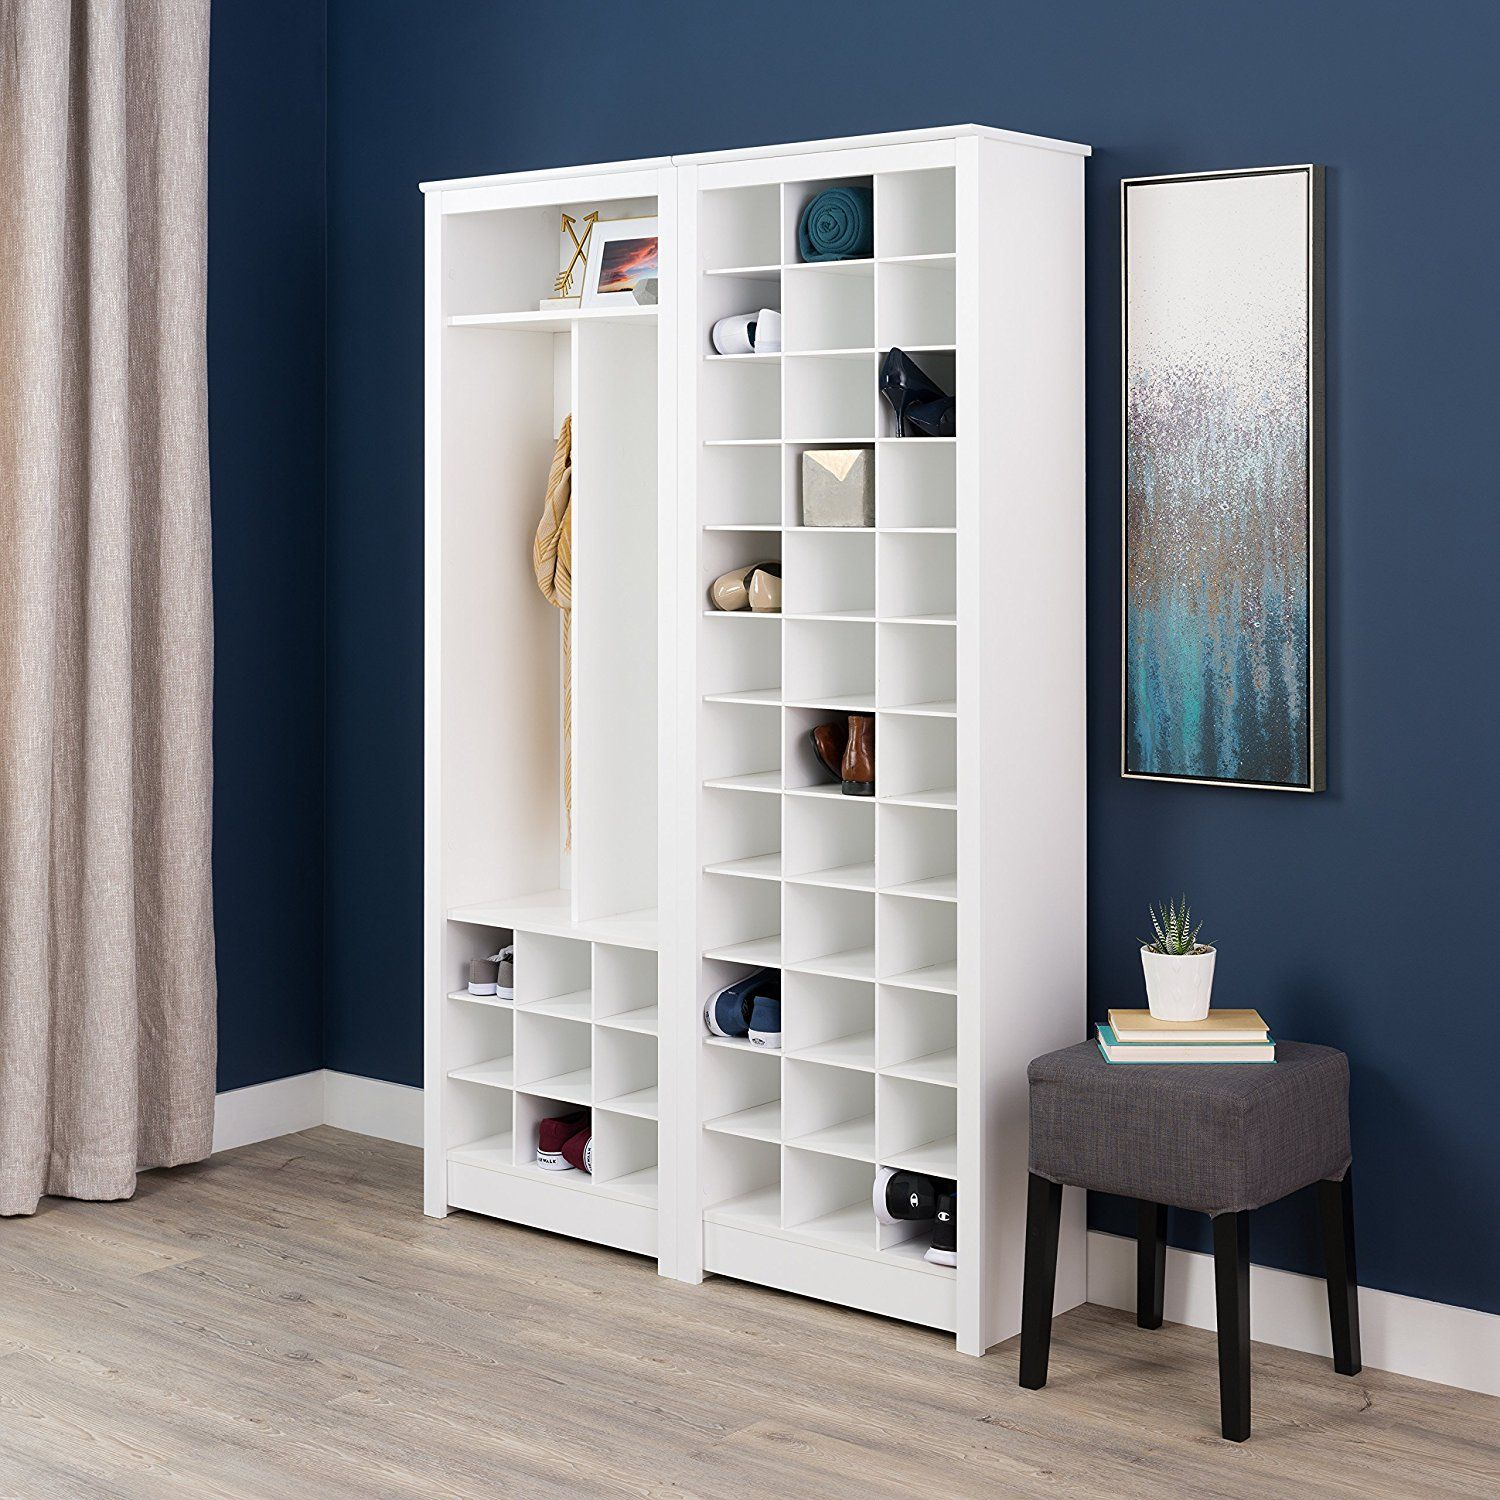 dark entryway cabinet organizer amazon and shoe doors furniture com rhodes with dp brown storage